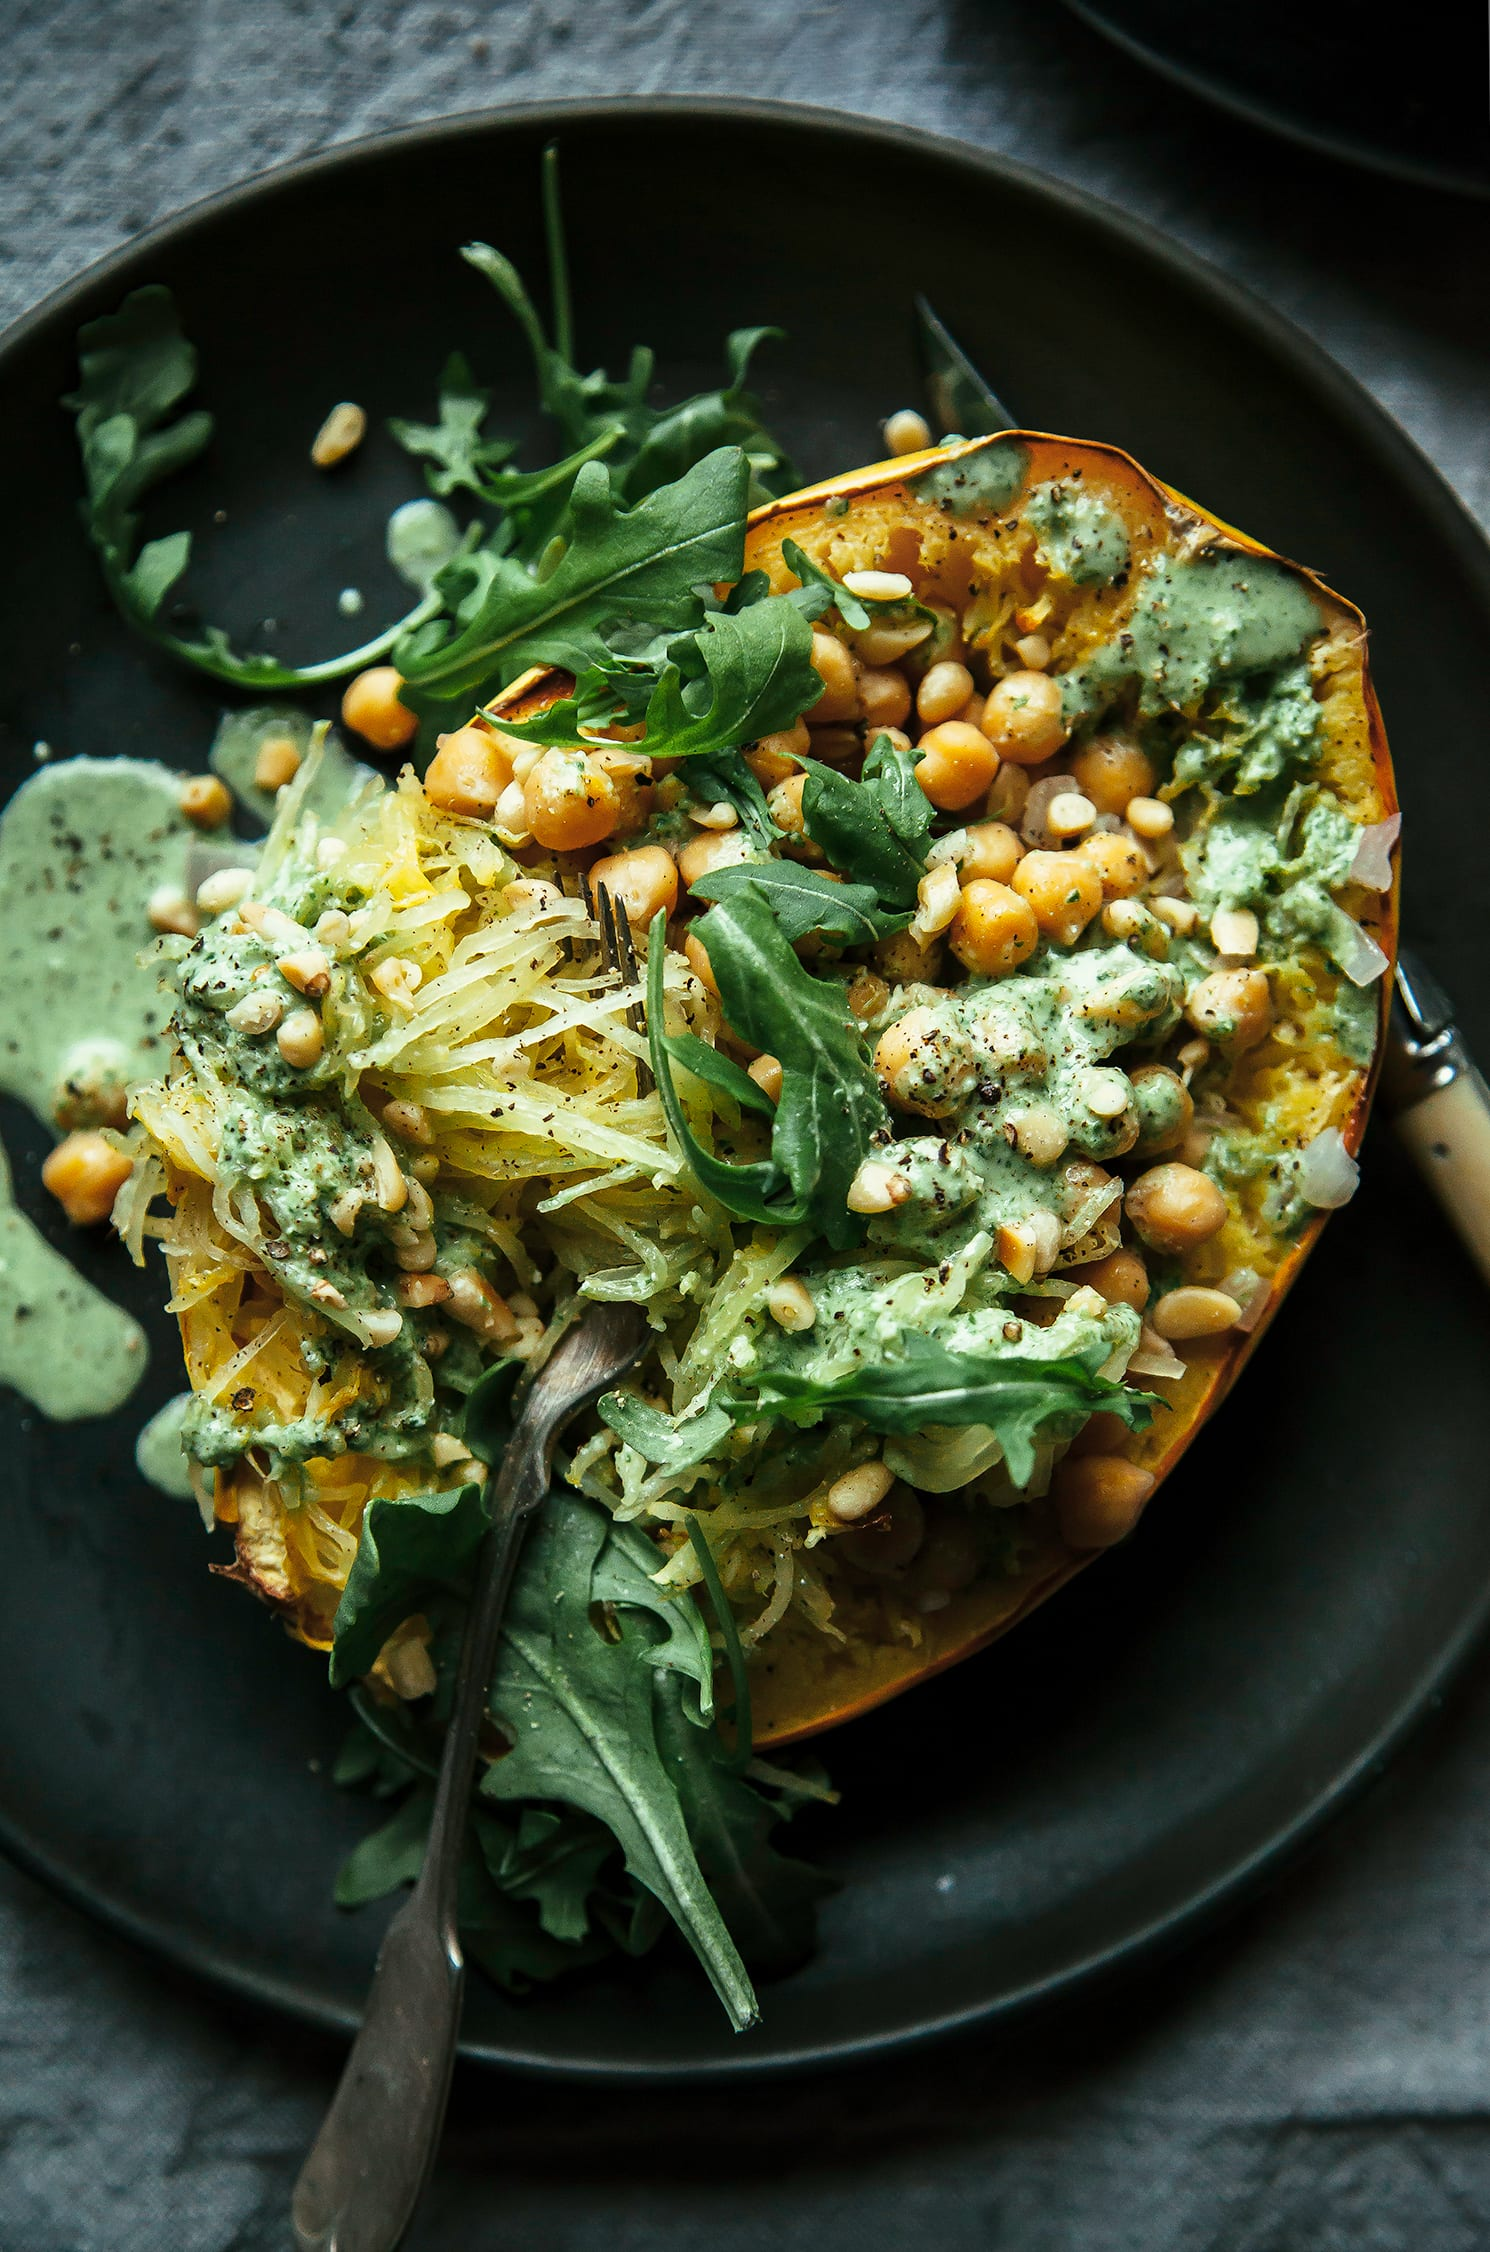 An overhead shot of a stuffed spaghetti squash half on top of a matte black plate that's set on top of a grey linen tablecloth. Inside the spaghetti squash is chickpeas, bright green garlicky arugula cream and leaves of arugula as well.